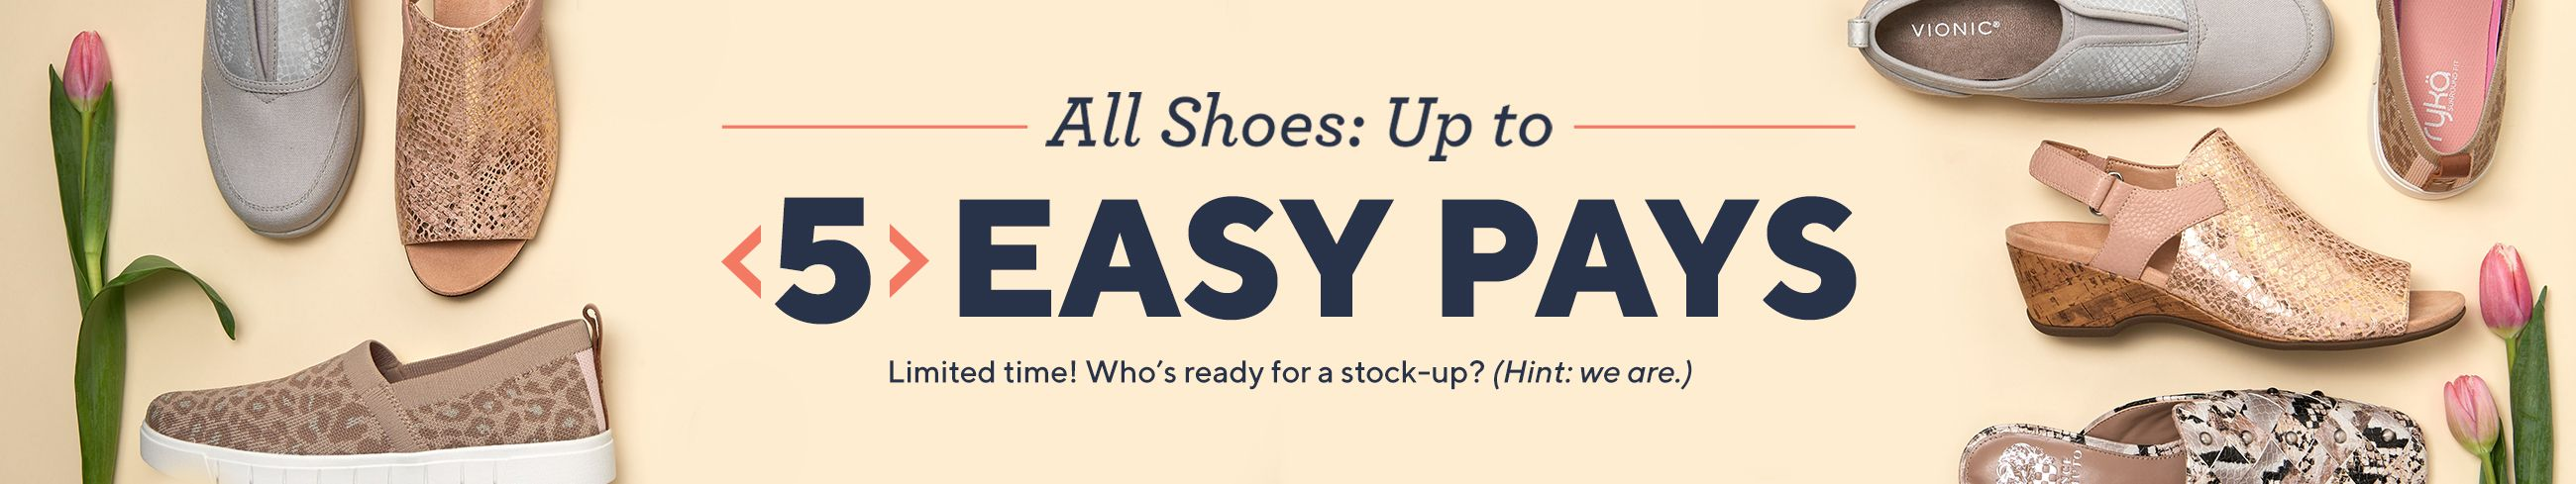 All Shoes: Up to 5 Easy Pays - Limited time! Who's ready for a stock-up? (Hint: we are.)